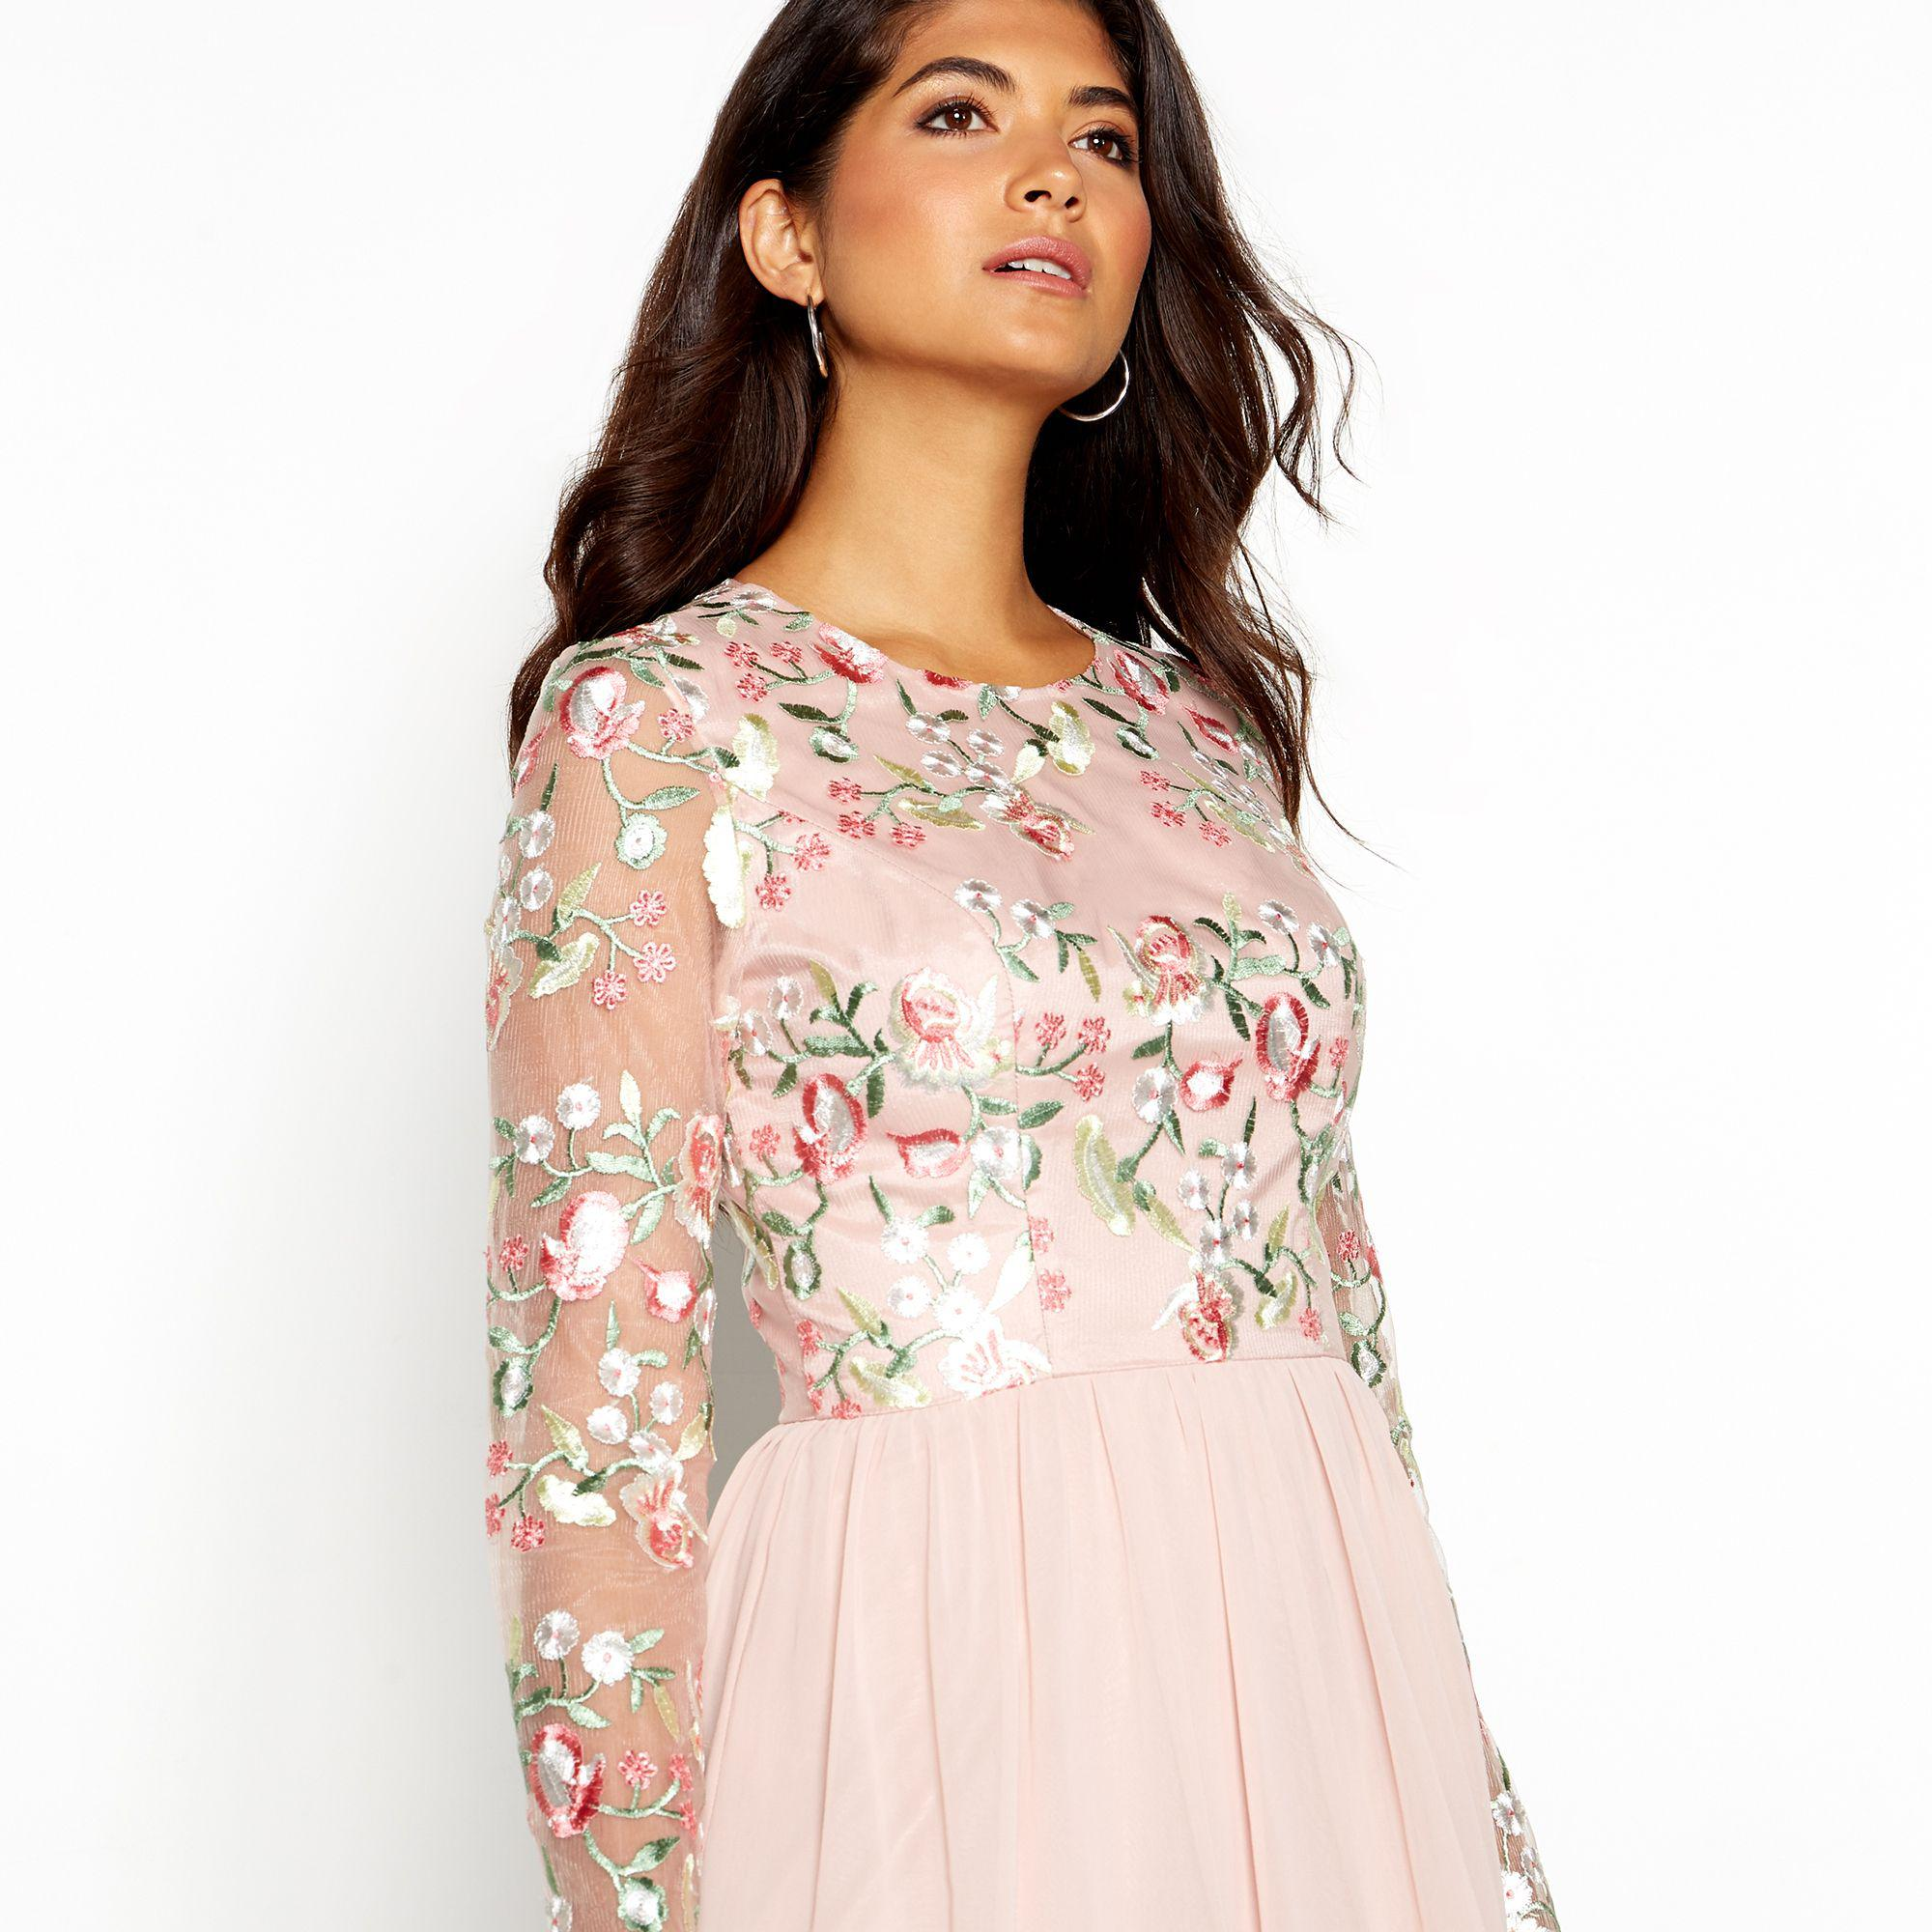 d4306a1dea9 Chi Chi London - Pale Pink Floral Embroidered Chiffon  bee  Round Neck Long  Sleeve. View fullscreen